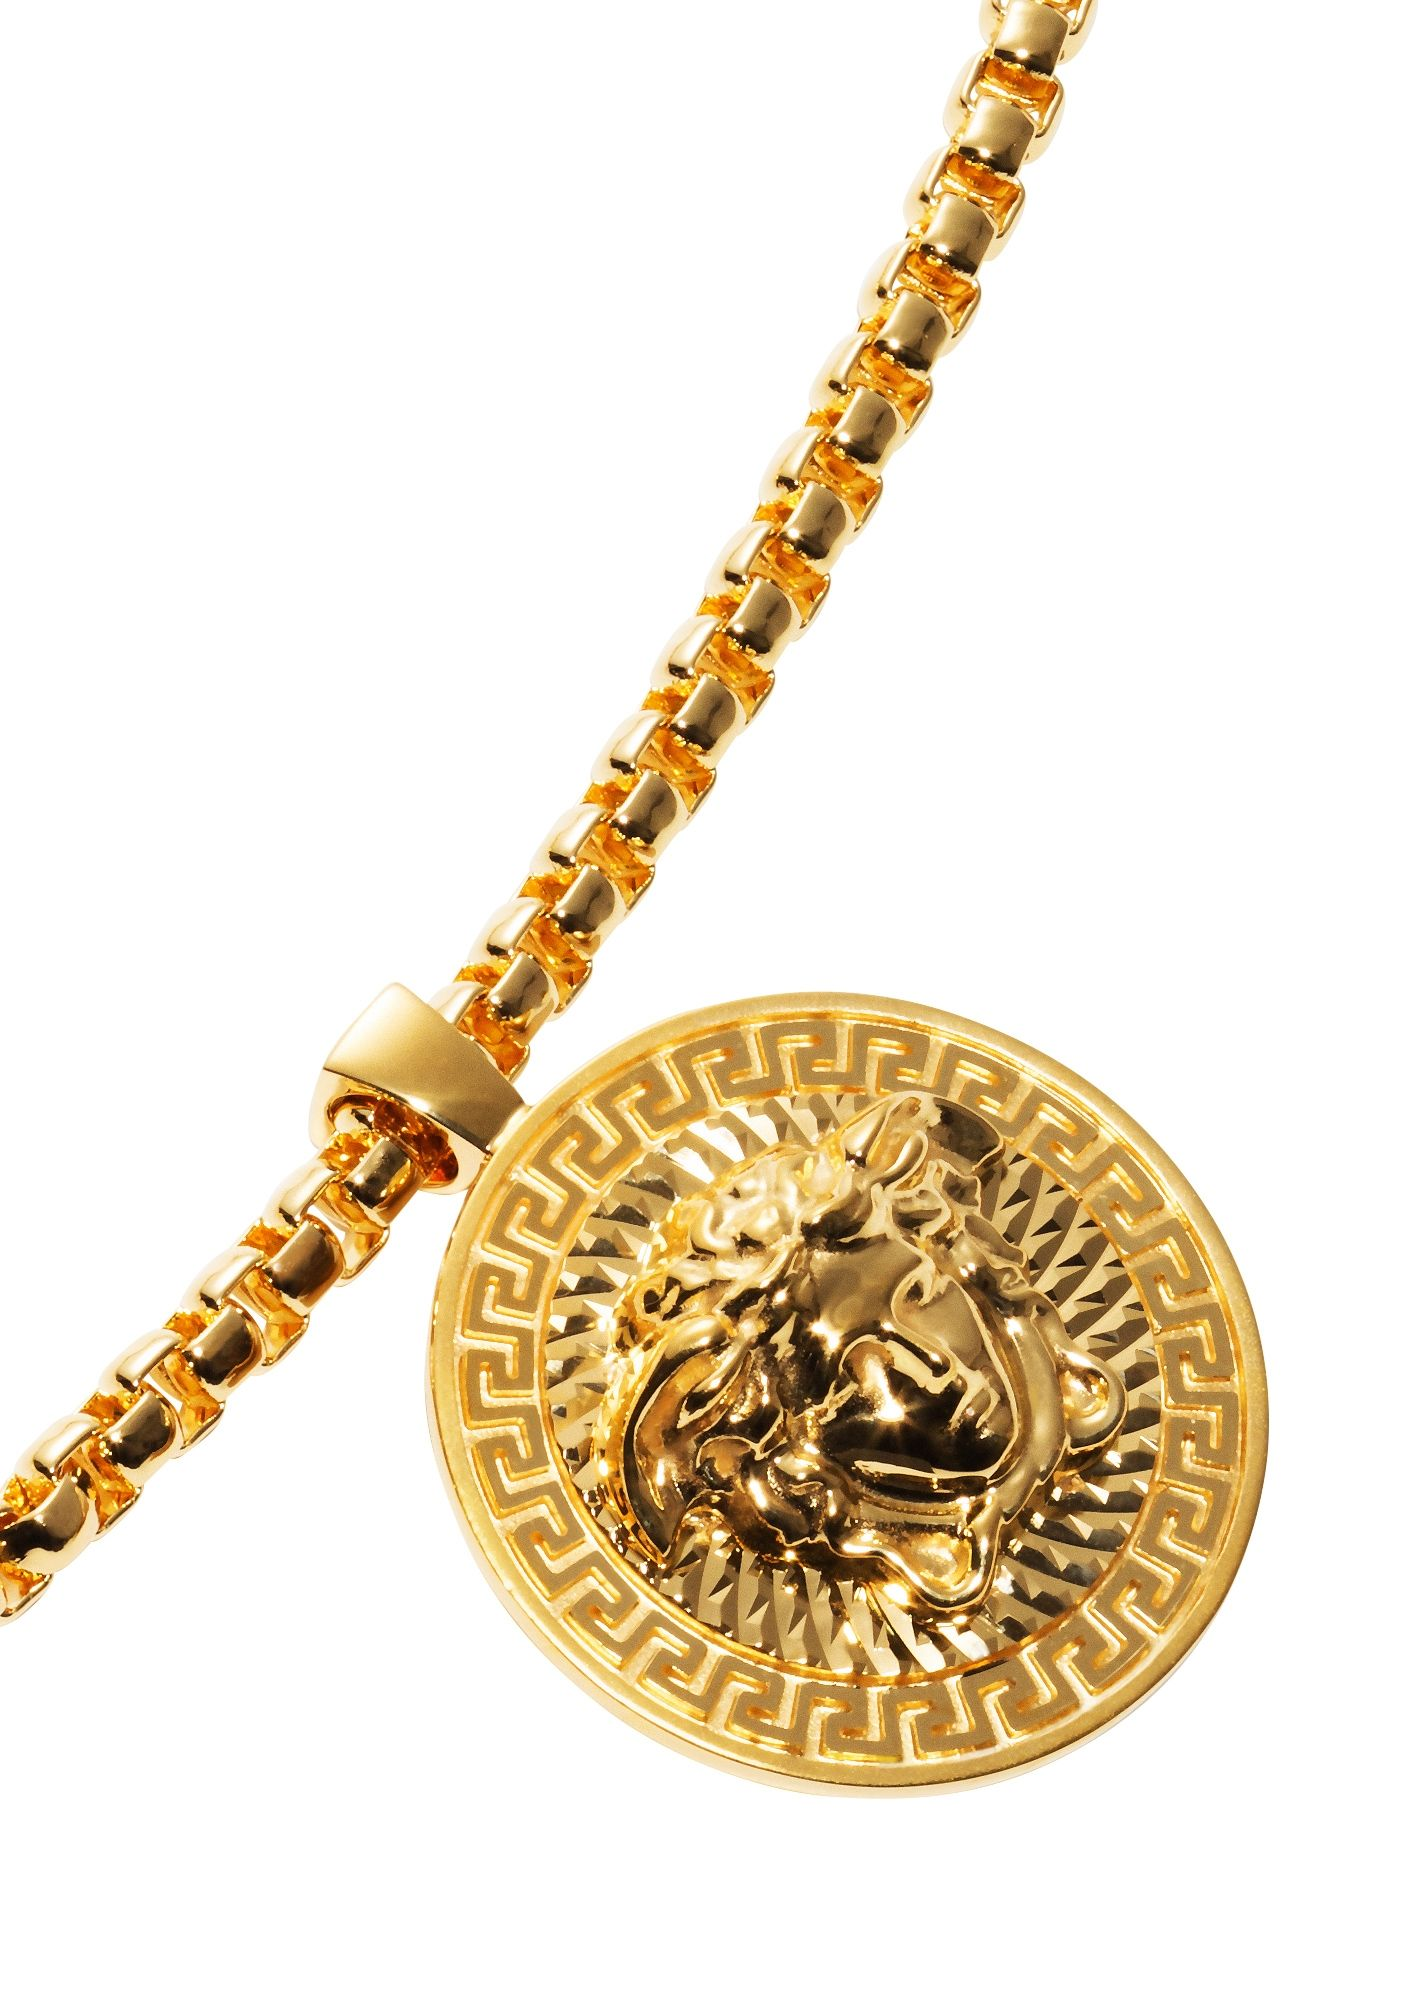 This bold gold medusa necklace is a daring and provocative accessory